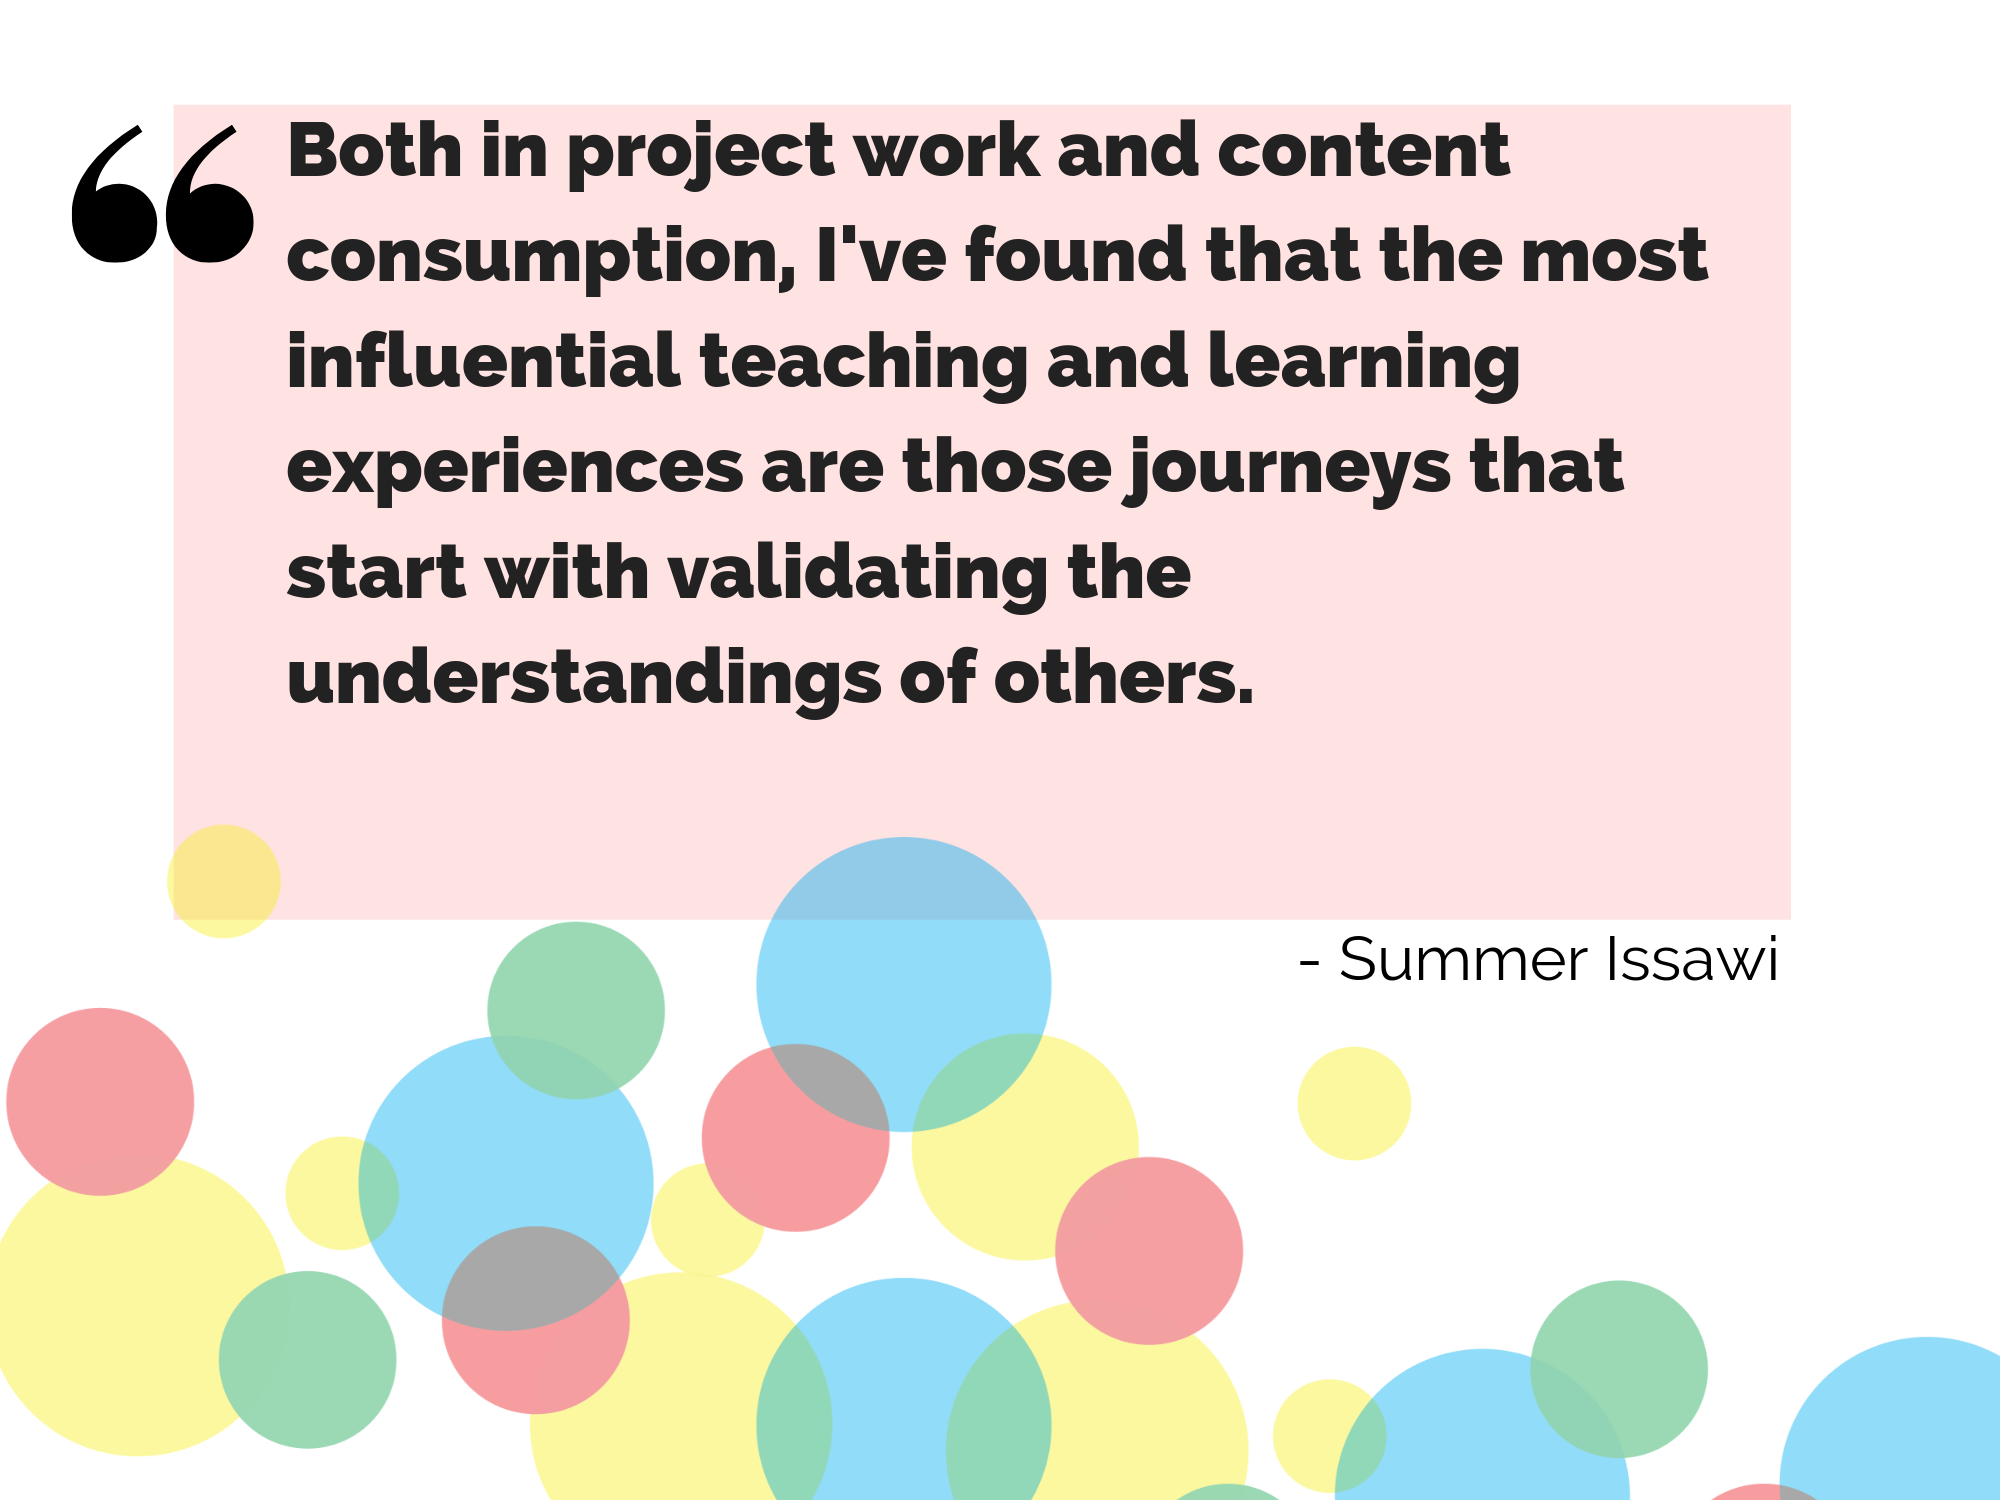 """Both in project work and content consumption, I've found that the most influential teaching and learning experiences are those journeys that start with validating the understandings of others"" - Summer Issawi"